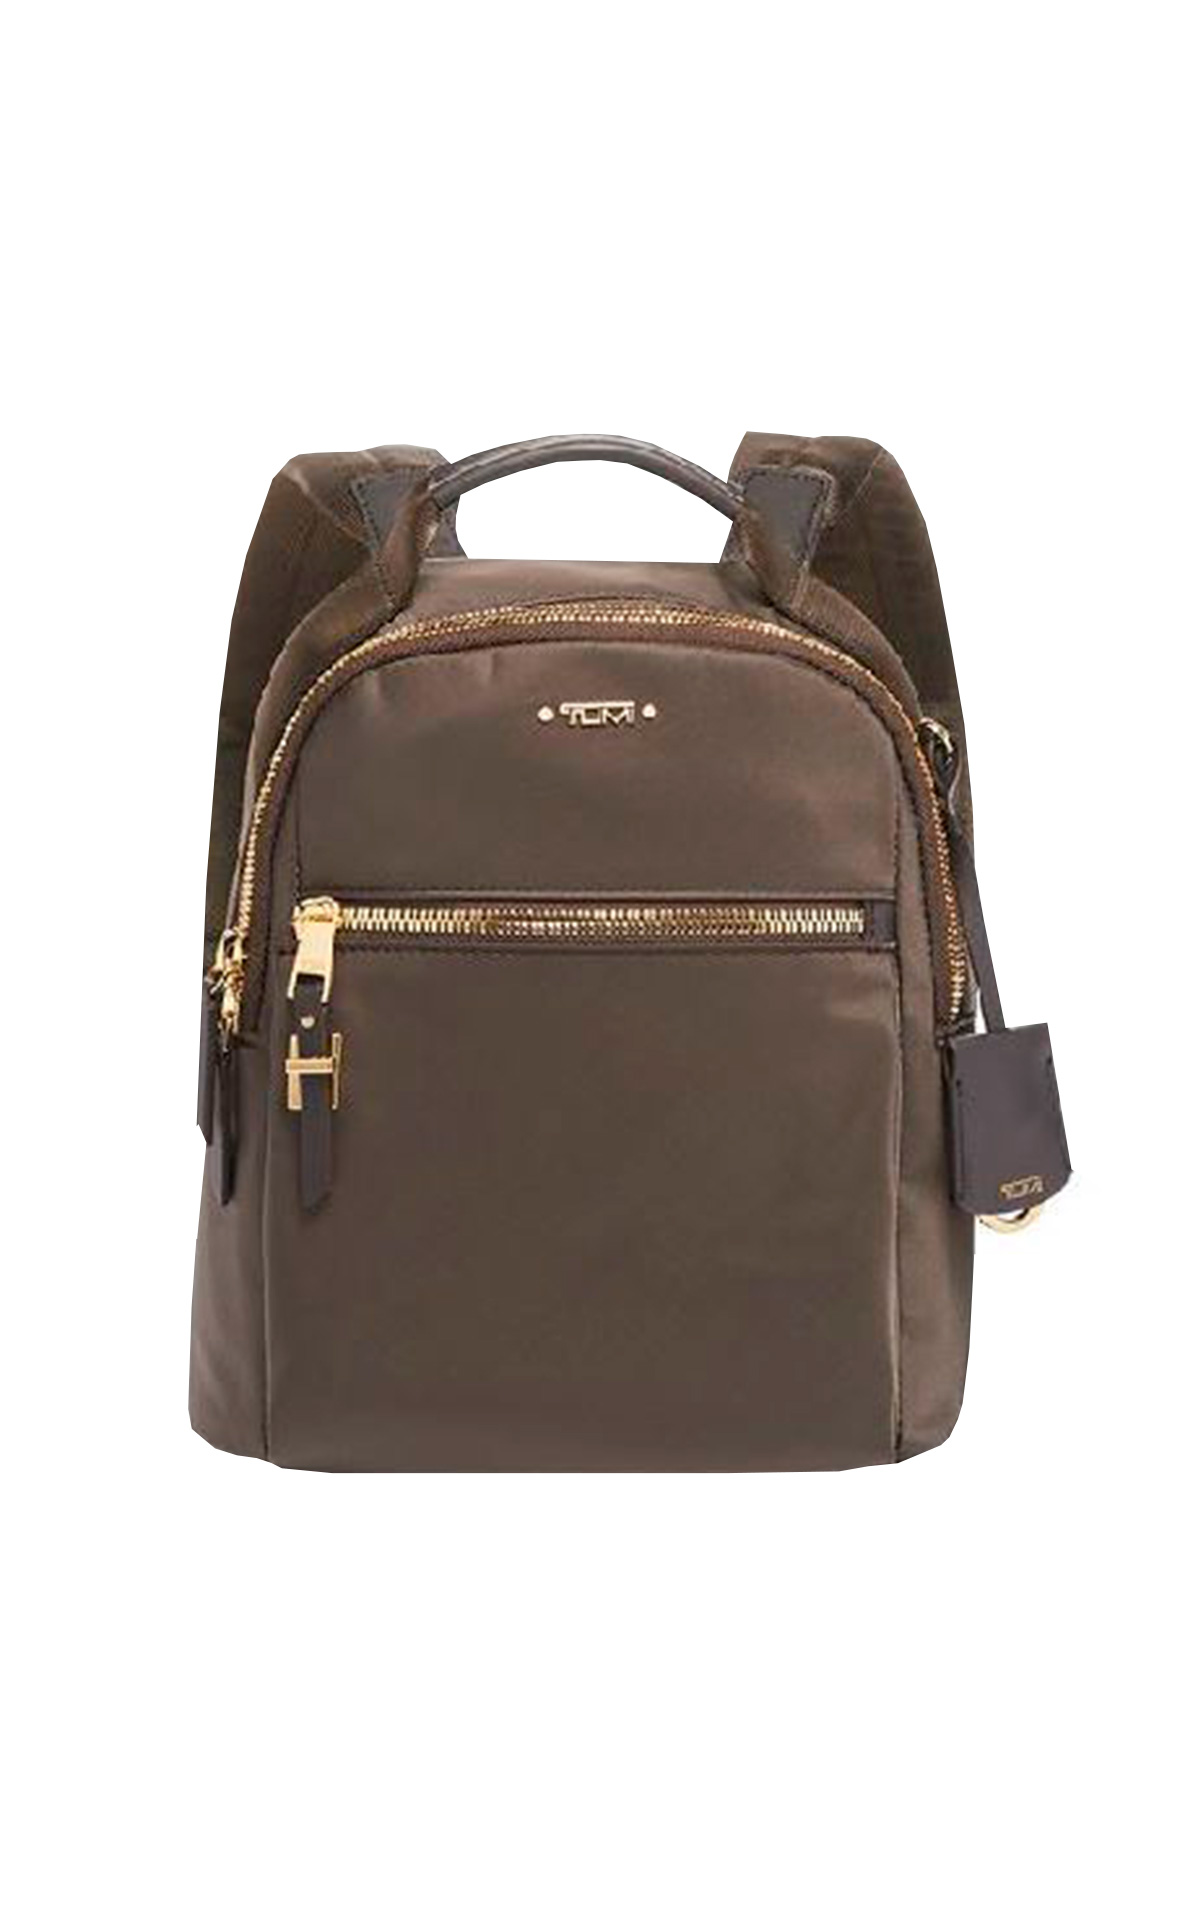 Witney backpack Tumi